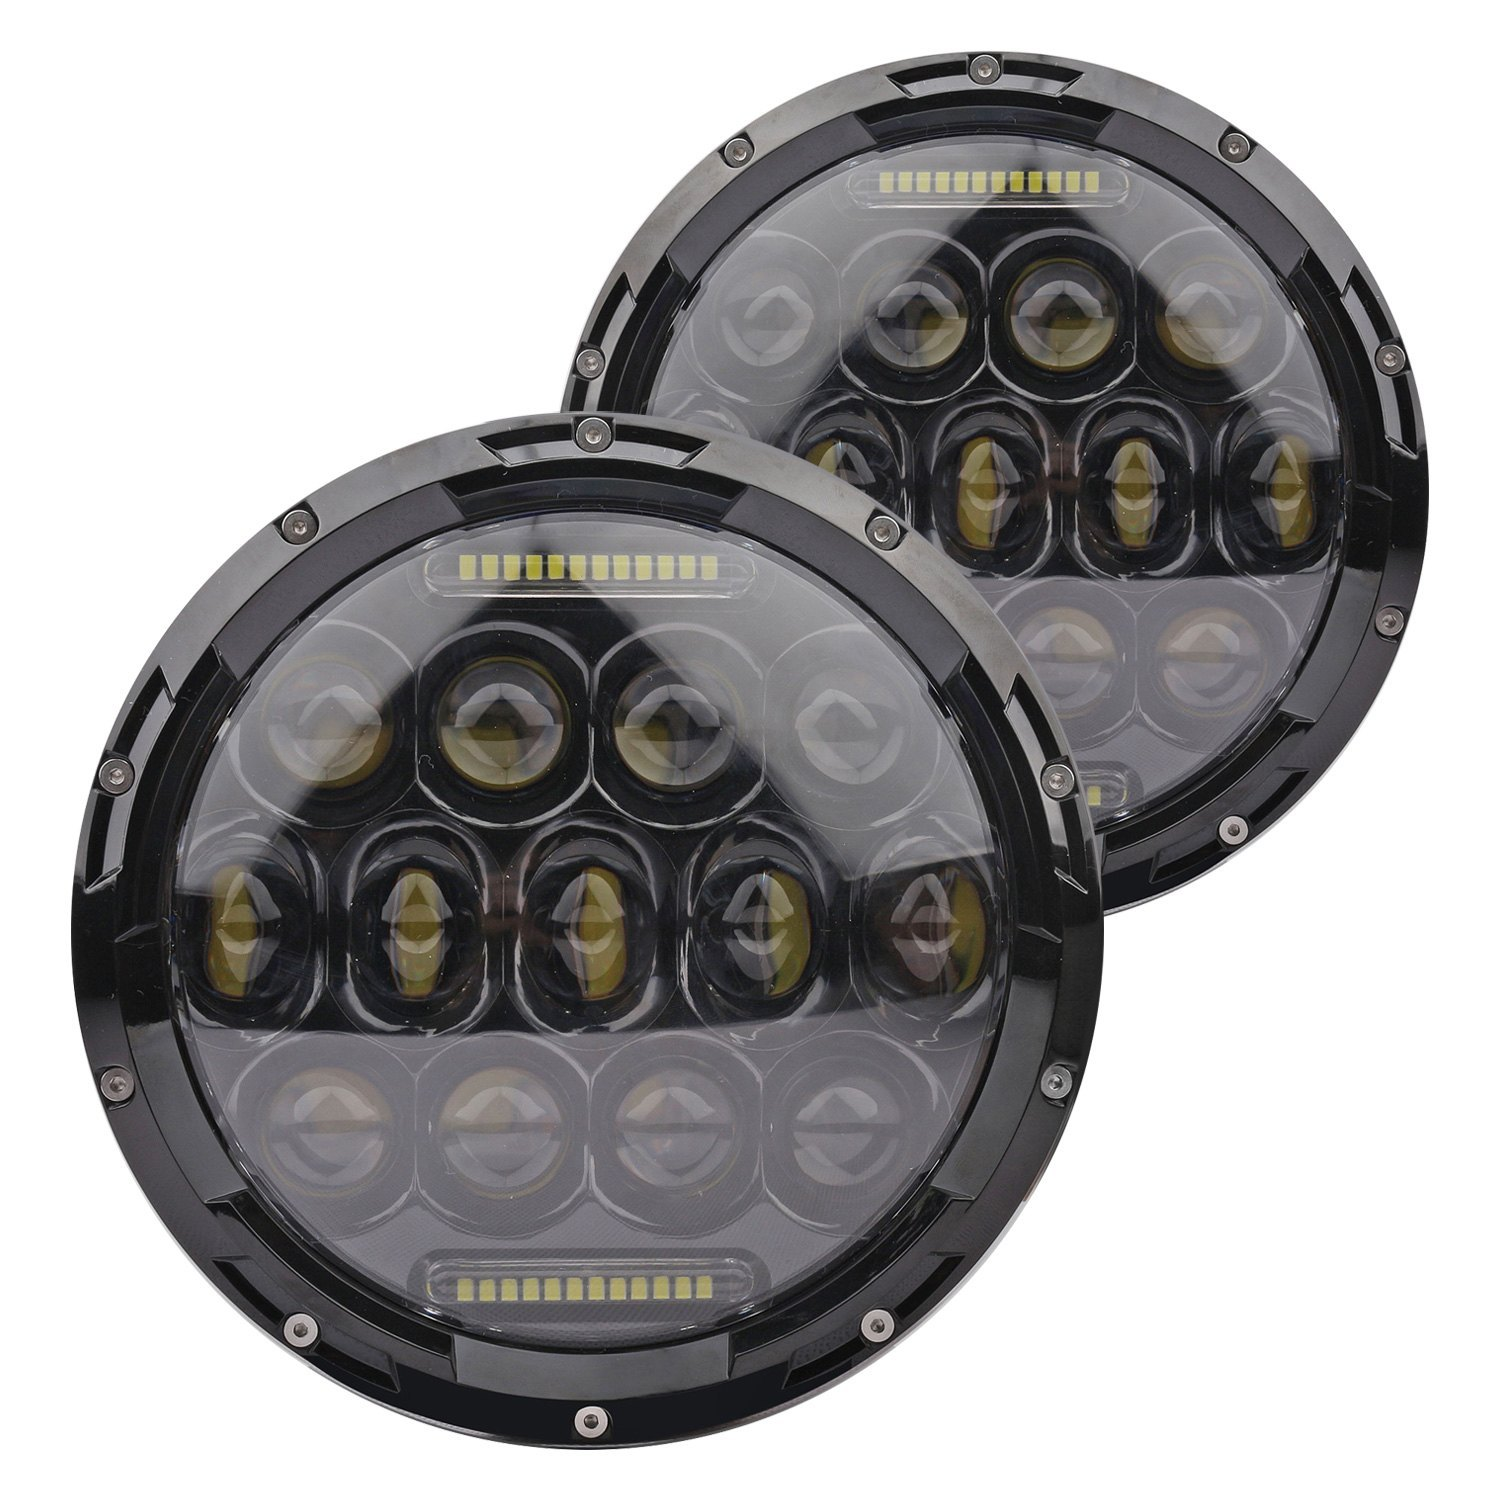 Lifetime Led Lights Jeep Wrangler 2013 7 Round Black Projector Led Headlights With Drl